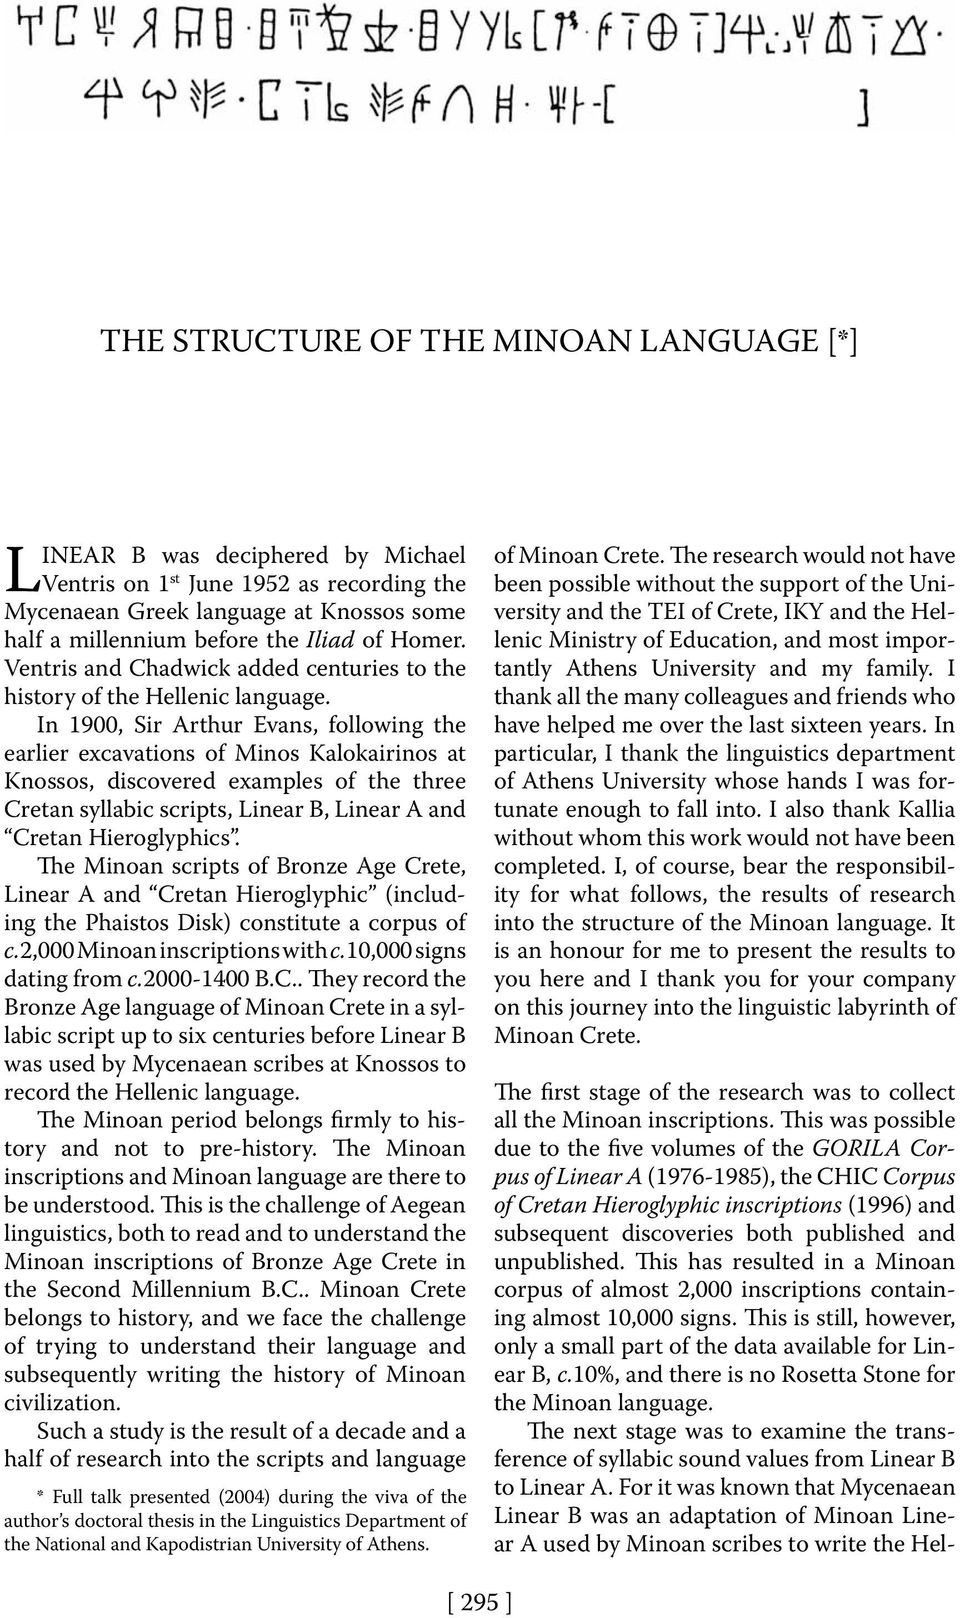 In 1900, Sir Arthur Evans, following the earlier excavations of Minos Kalokairinos at Knossos, discovered examples of the three Cretan syllabic scripts, Linear B, Linear A and Cretan Hieroglyphics.